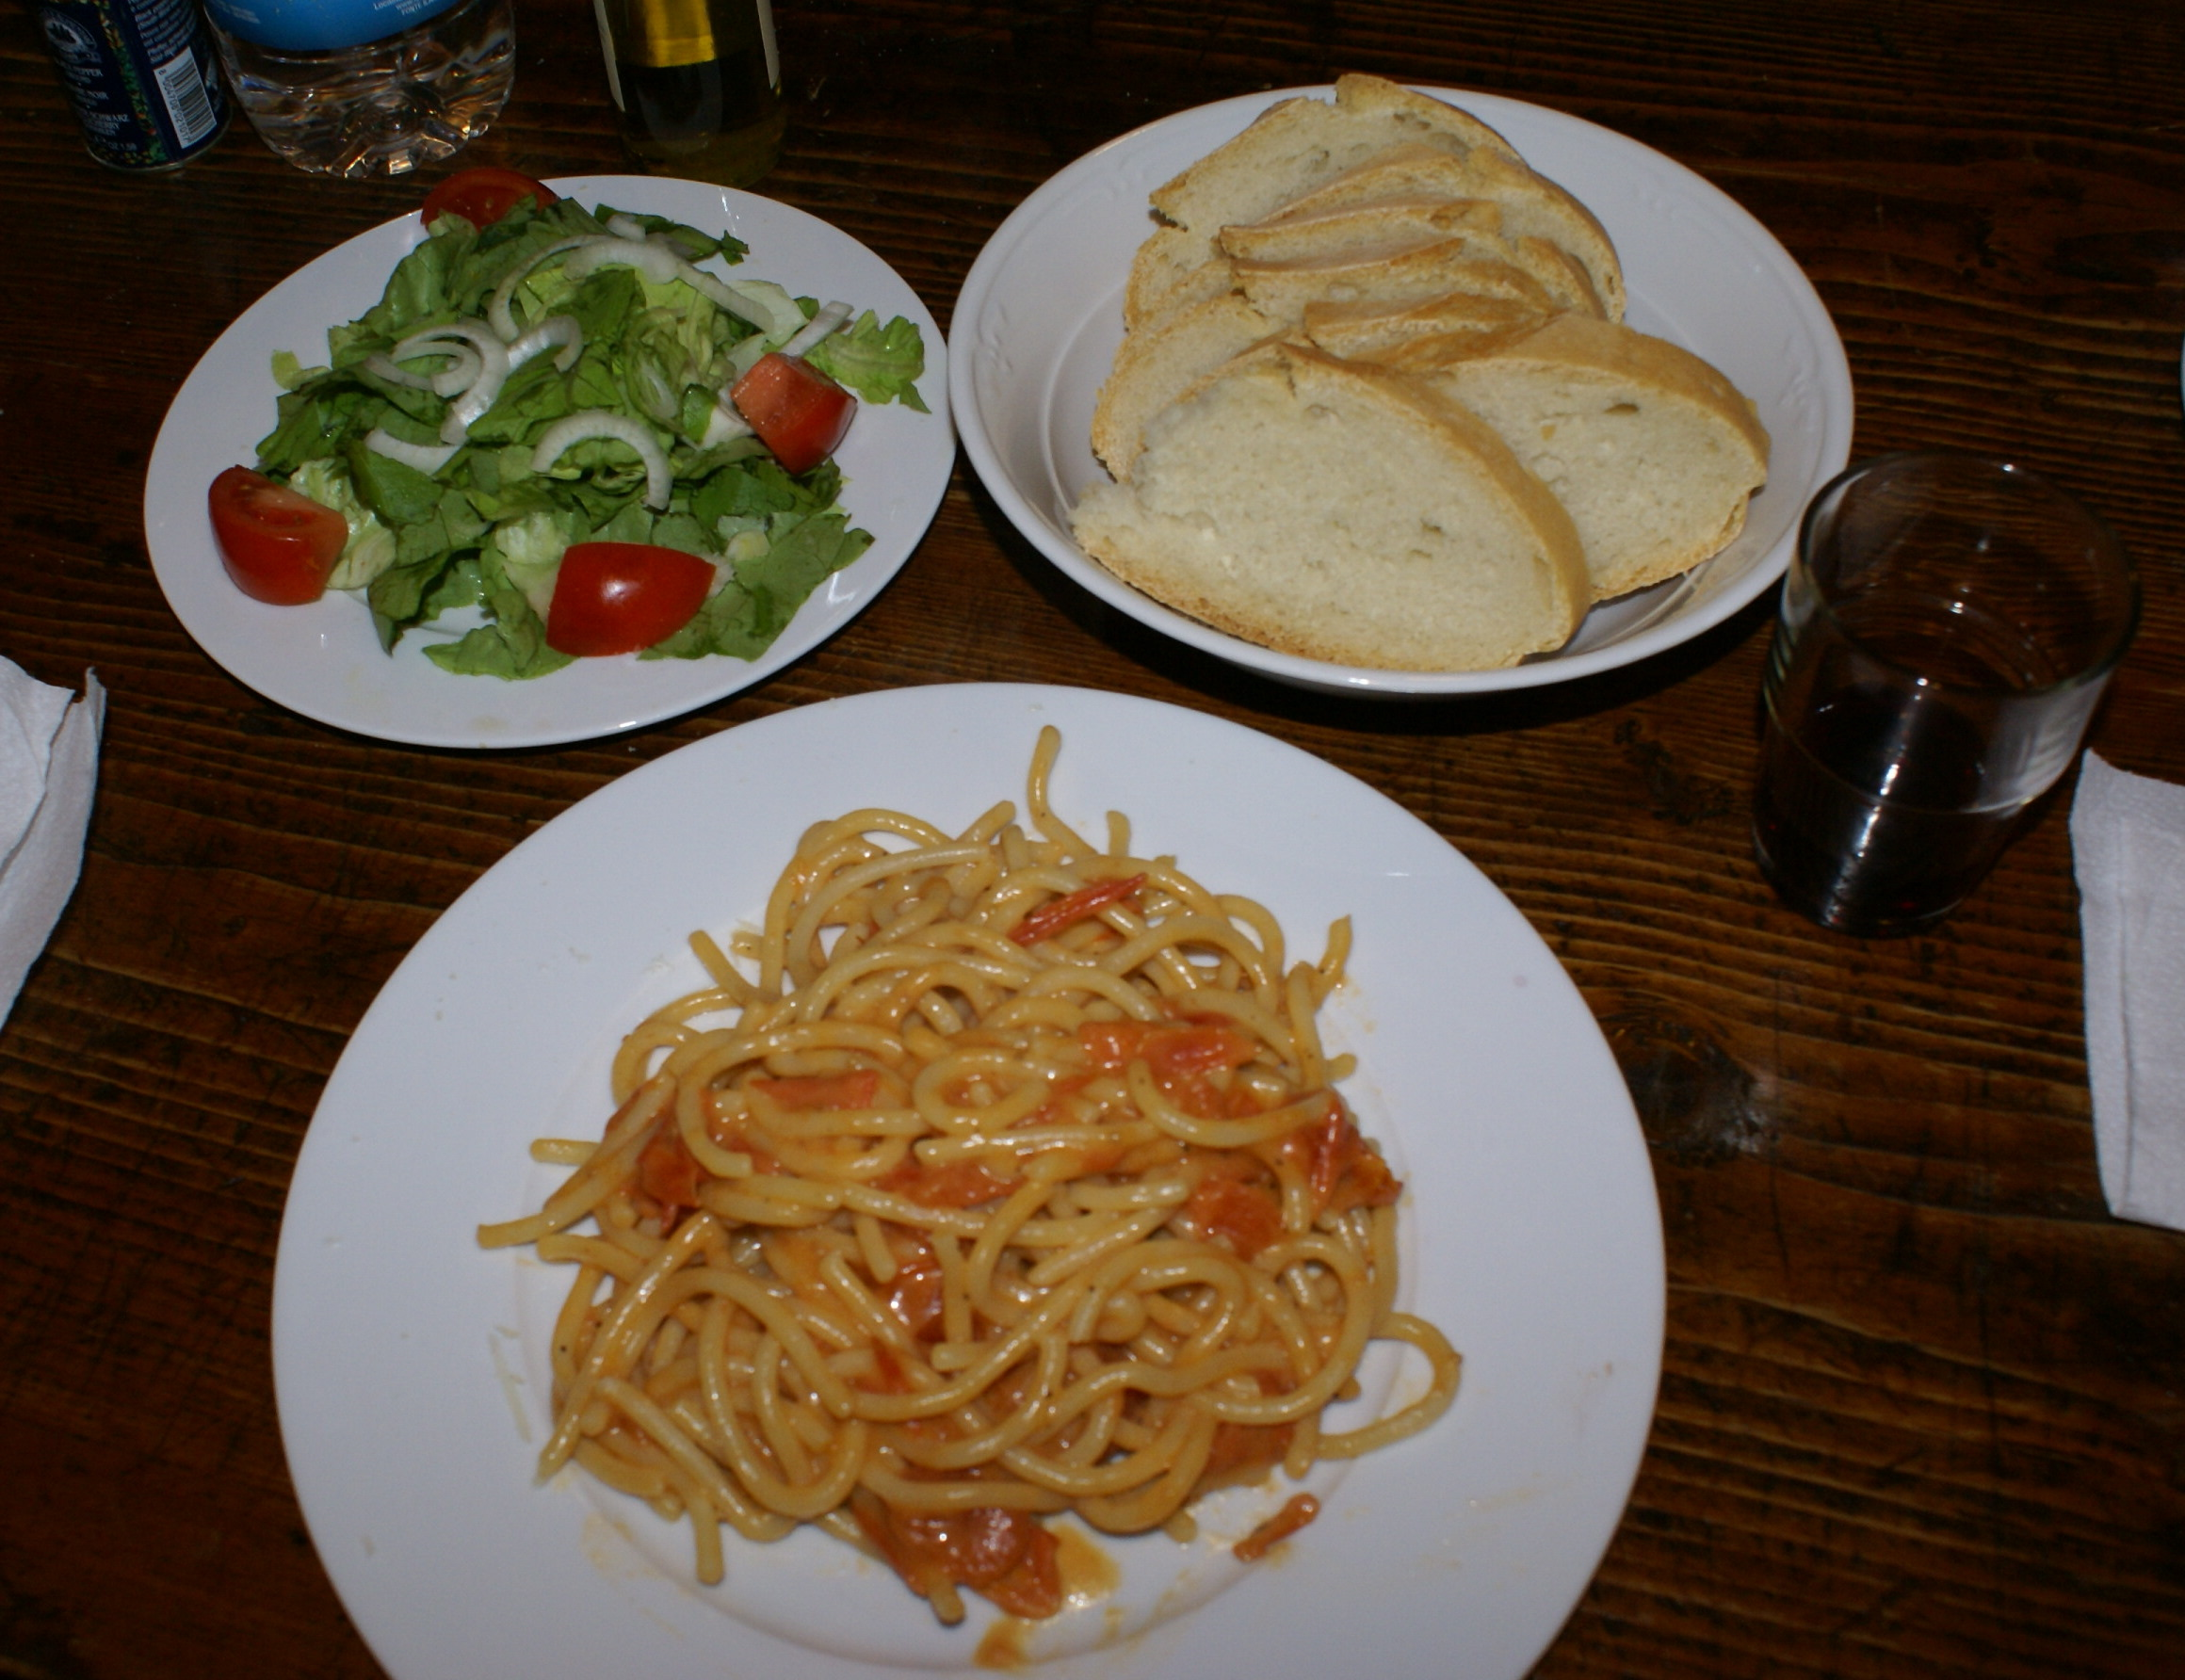 Homemade meal of local products at rented villa in Tuscany